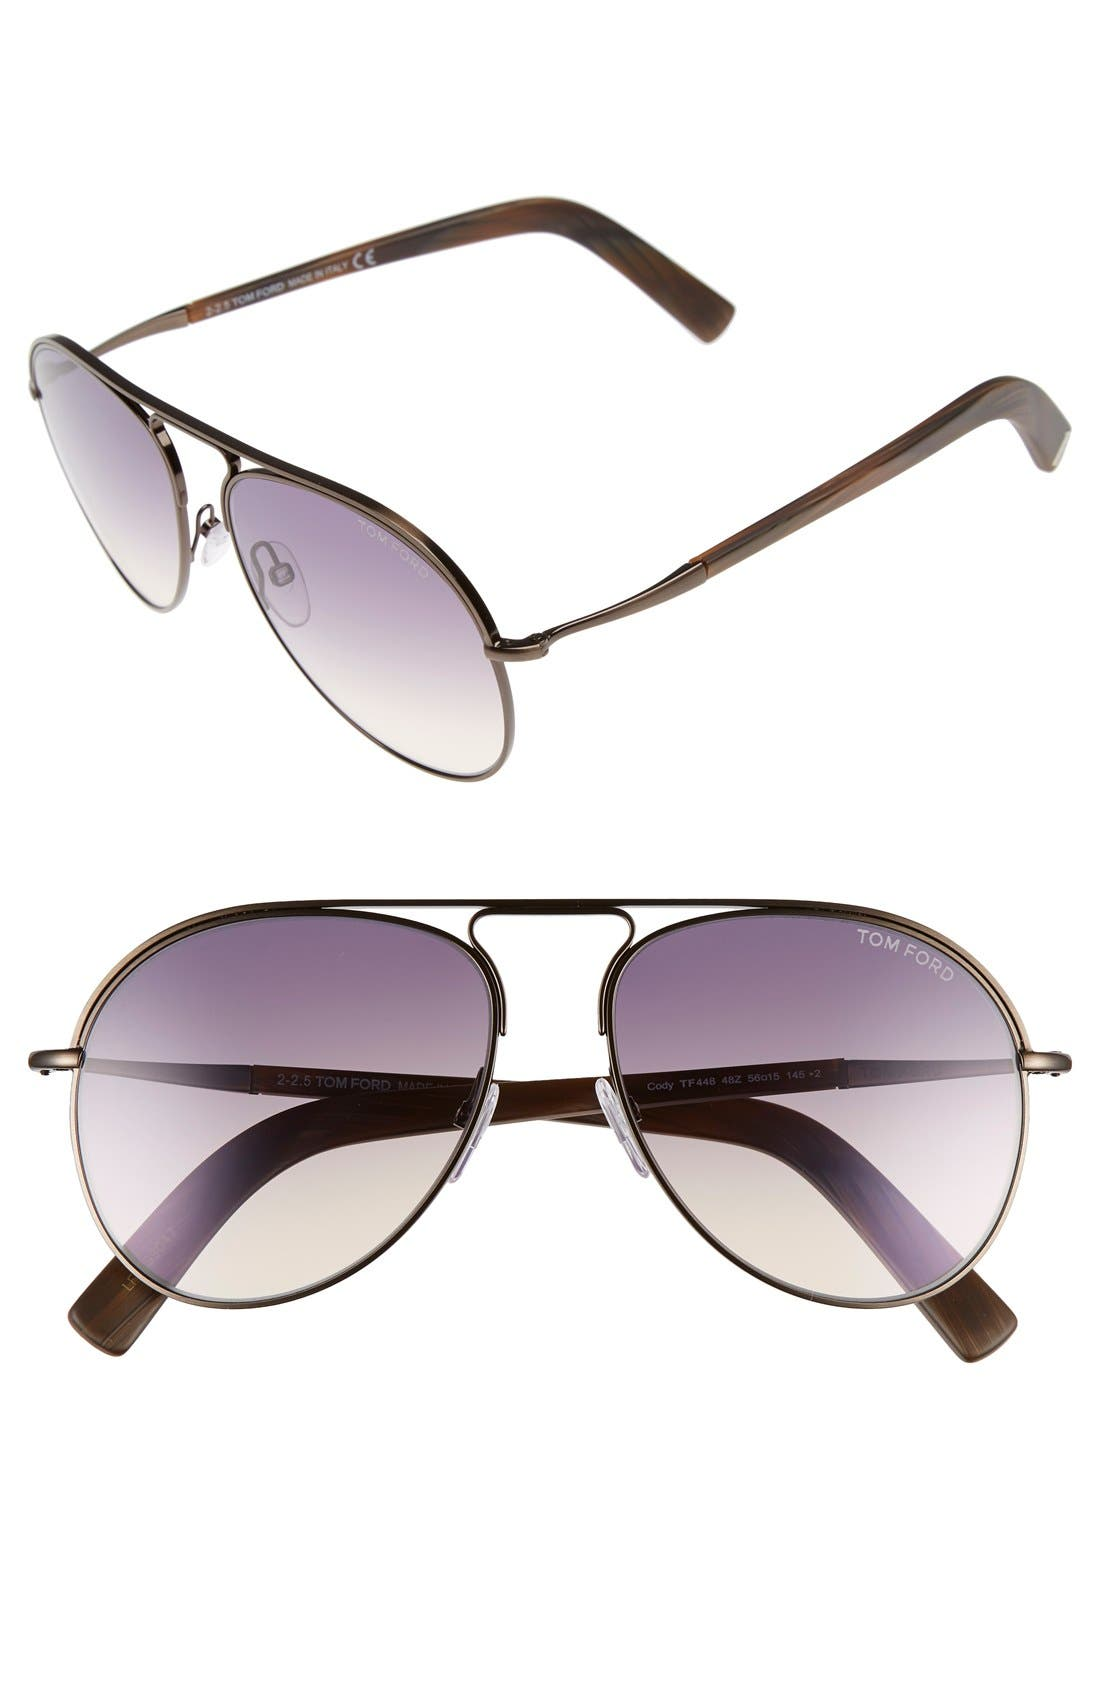 Alternate Image 1 Selected - Tom Ford 'Cody' 56mm Aviator Sunglasses